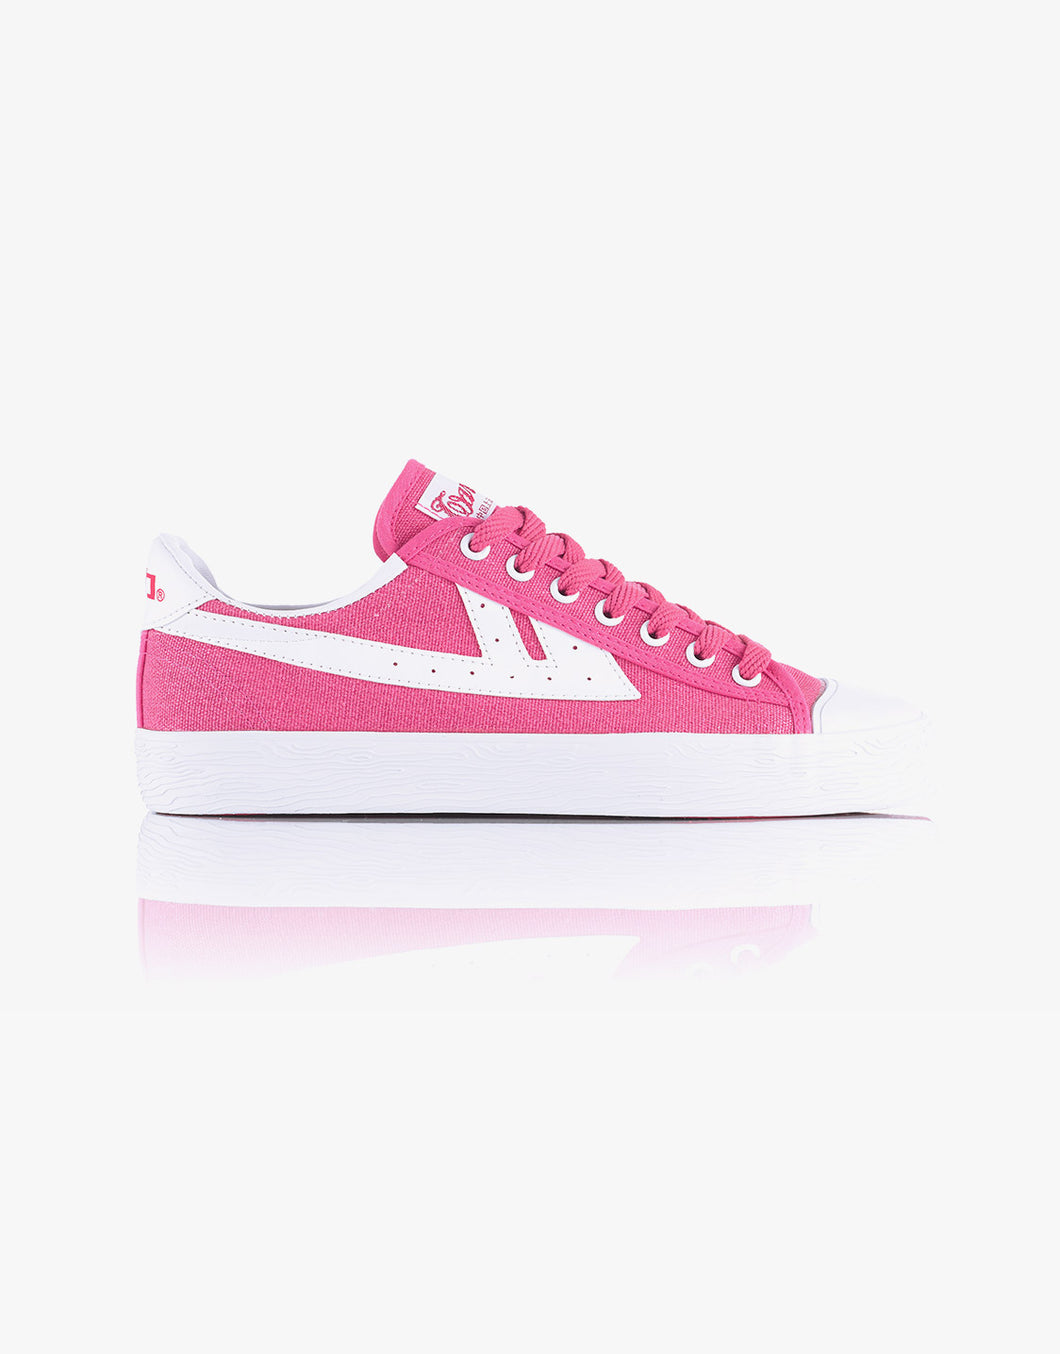 Warrior WB-1 pink white